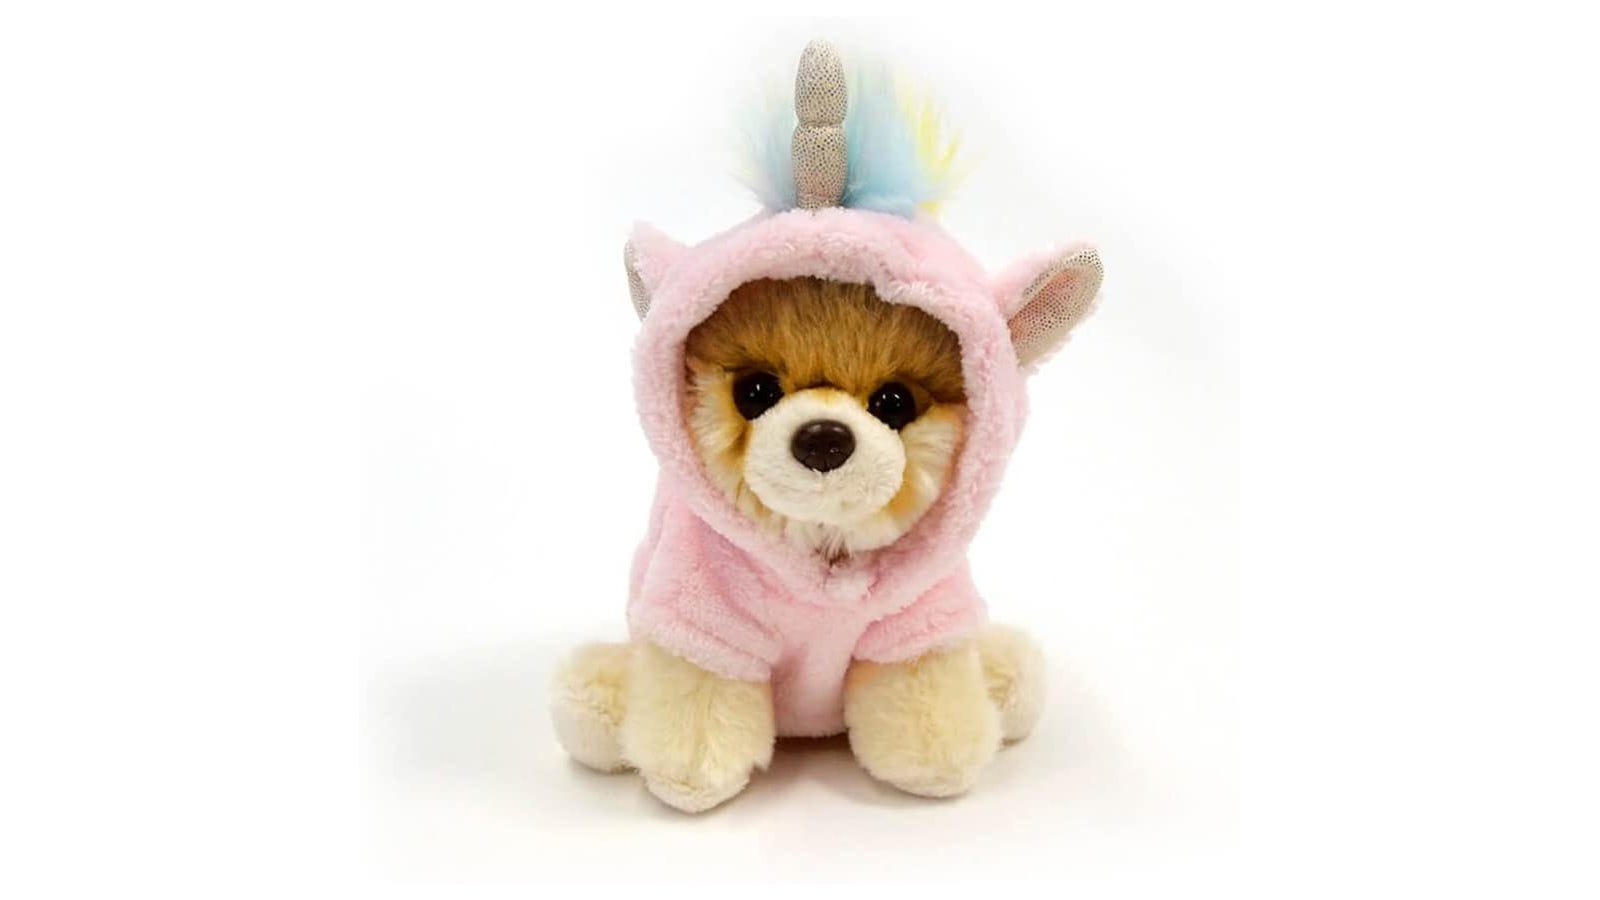 Brown dog stuffed animal wearing a pink hoodie that had a unicorn horn, mane, and ears.